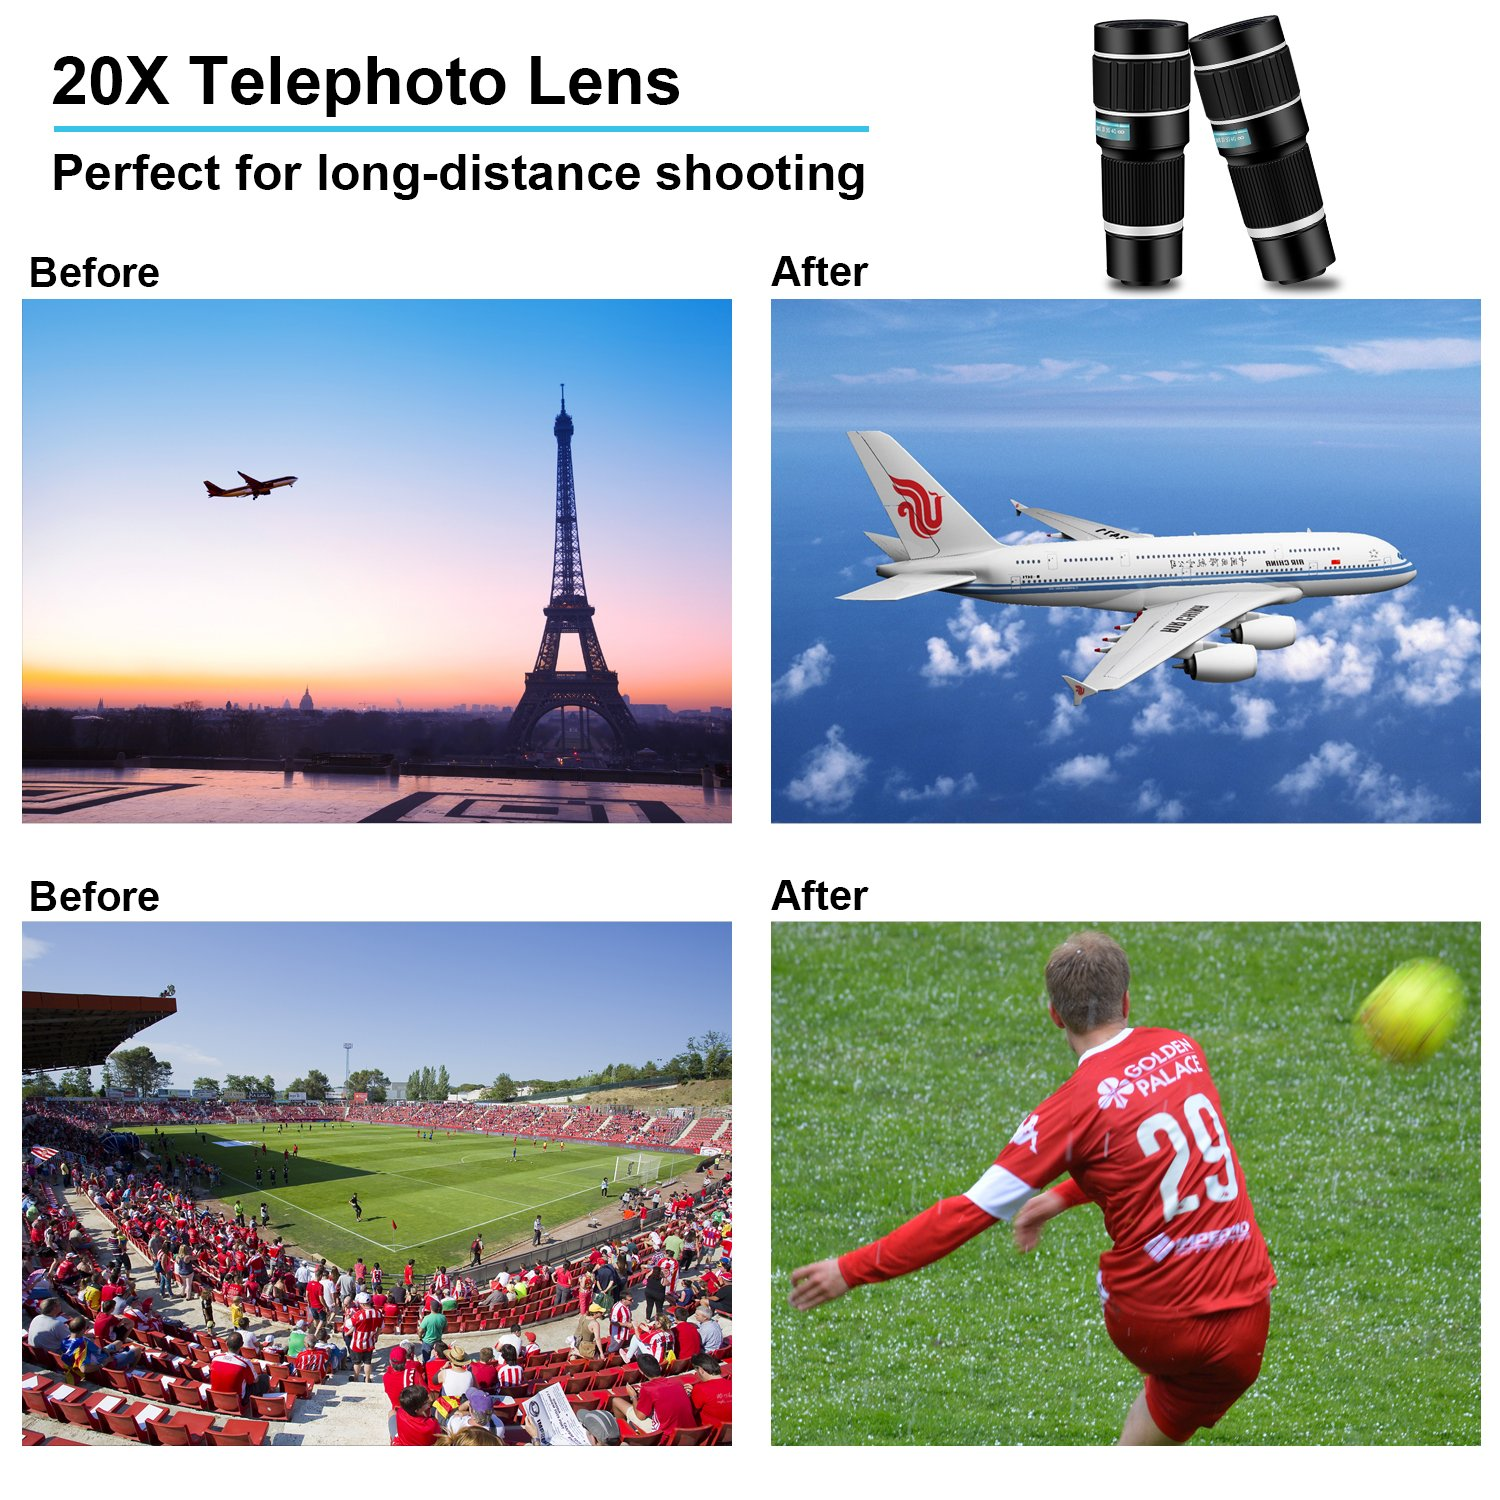 Amazon.com: Cell Phone Telephoto Camera Lens,Kaiess 2018 Newest 20x Telephoto Lens+ Flexible Phone Tripod + Photo Holder + Wireless Remote Shutter for ...